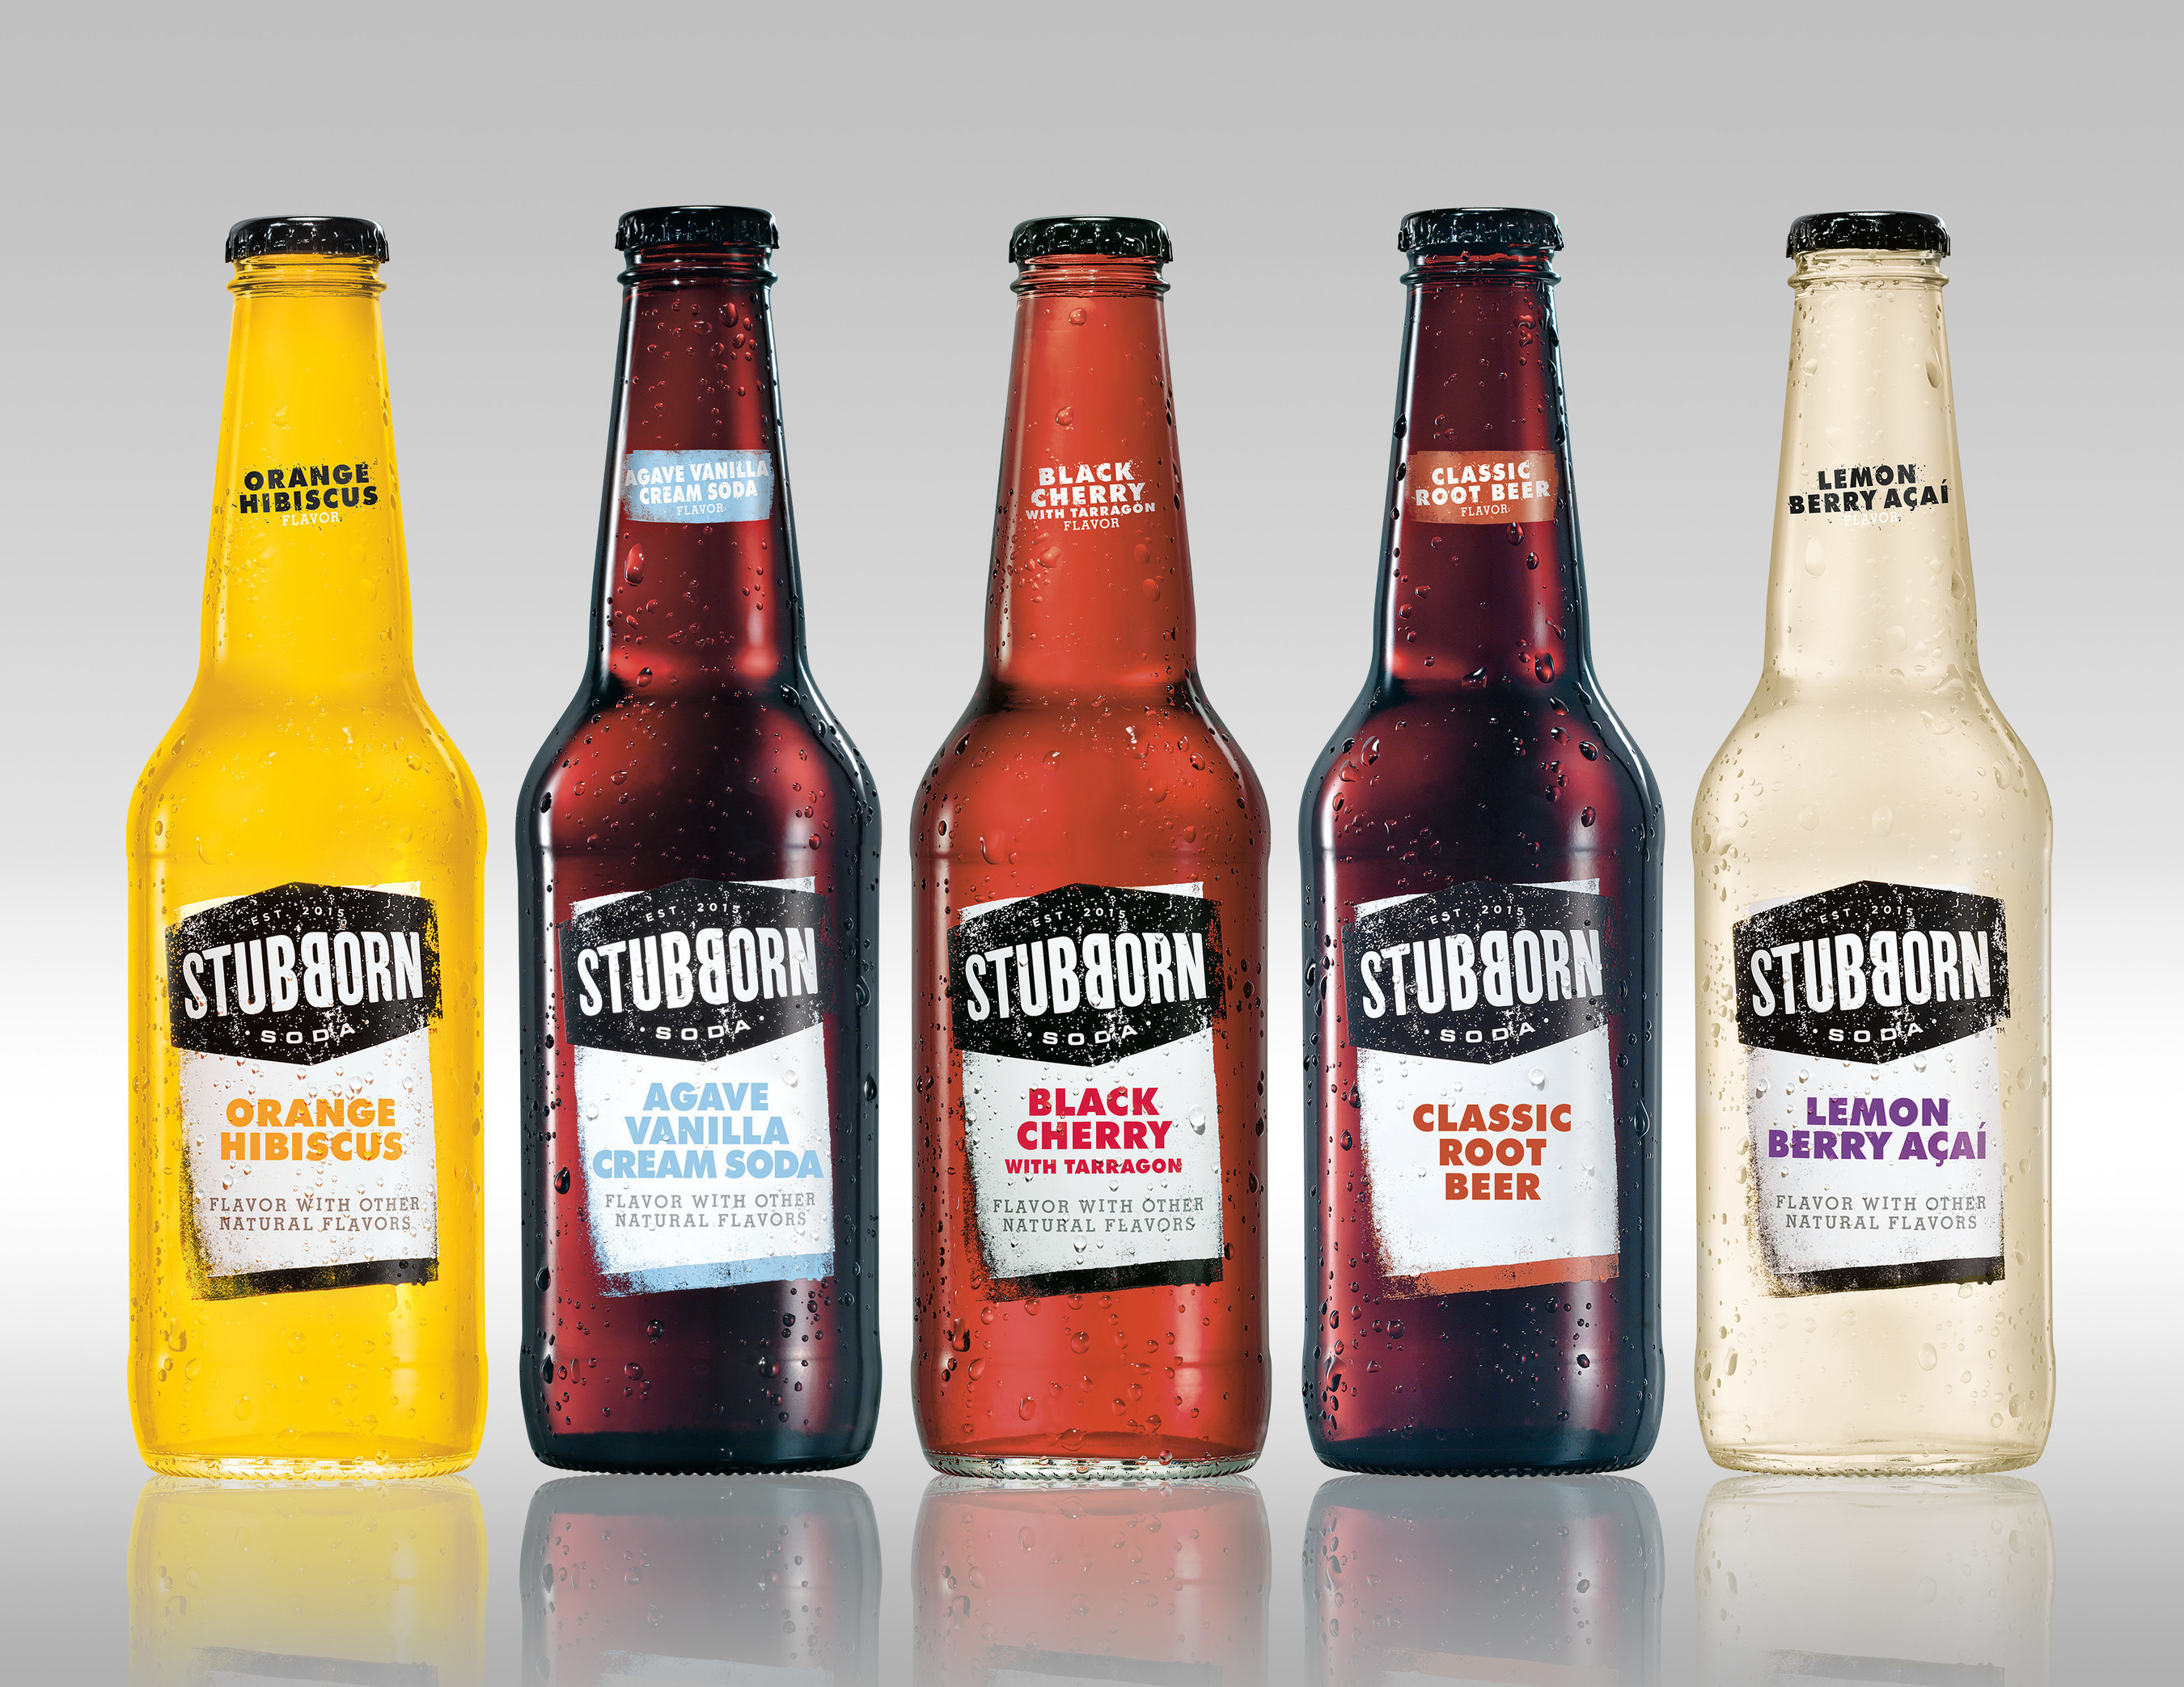 Stubborn Soda bottle line-up with garnishes